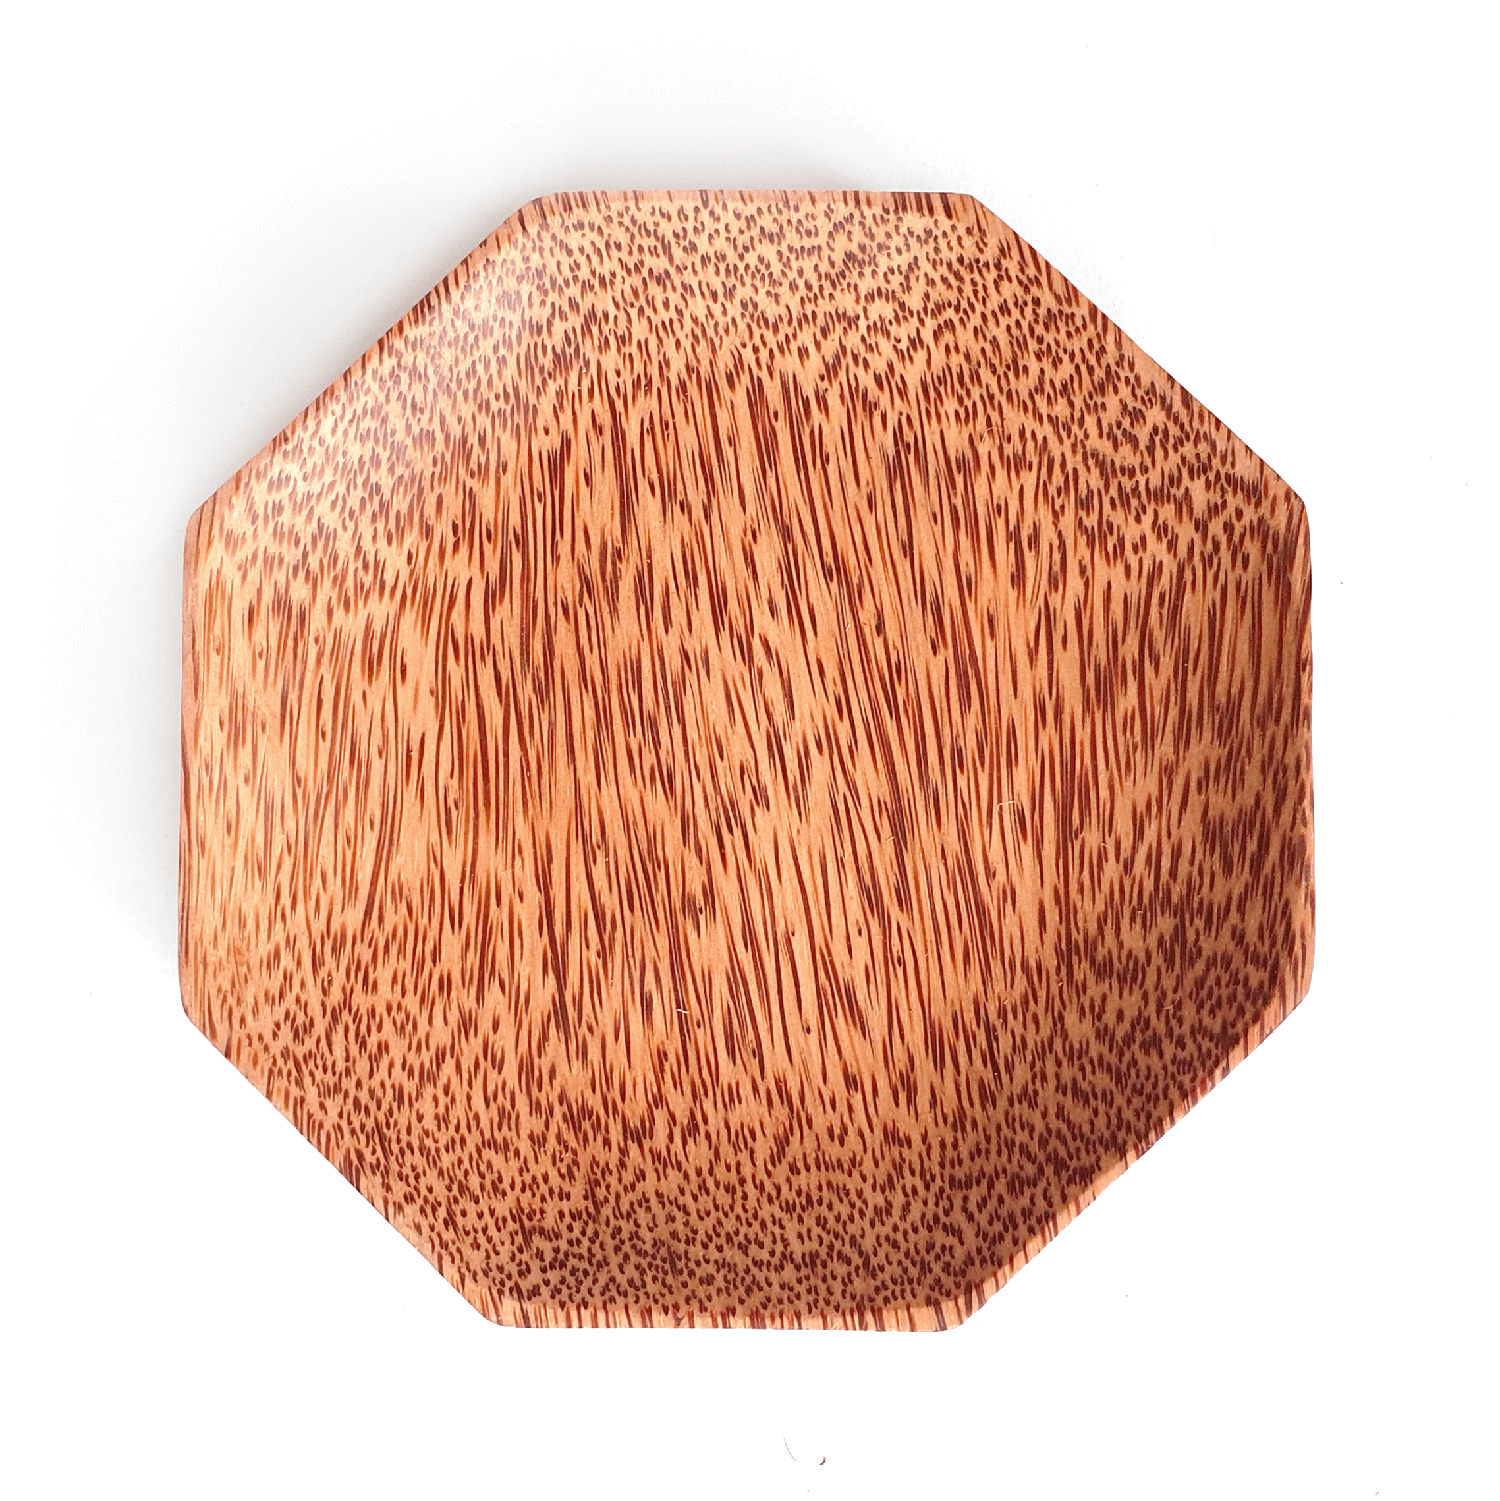 Polygon Coconut Wood Plate